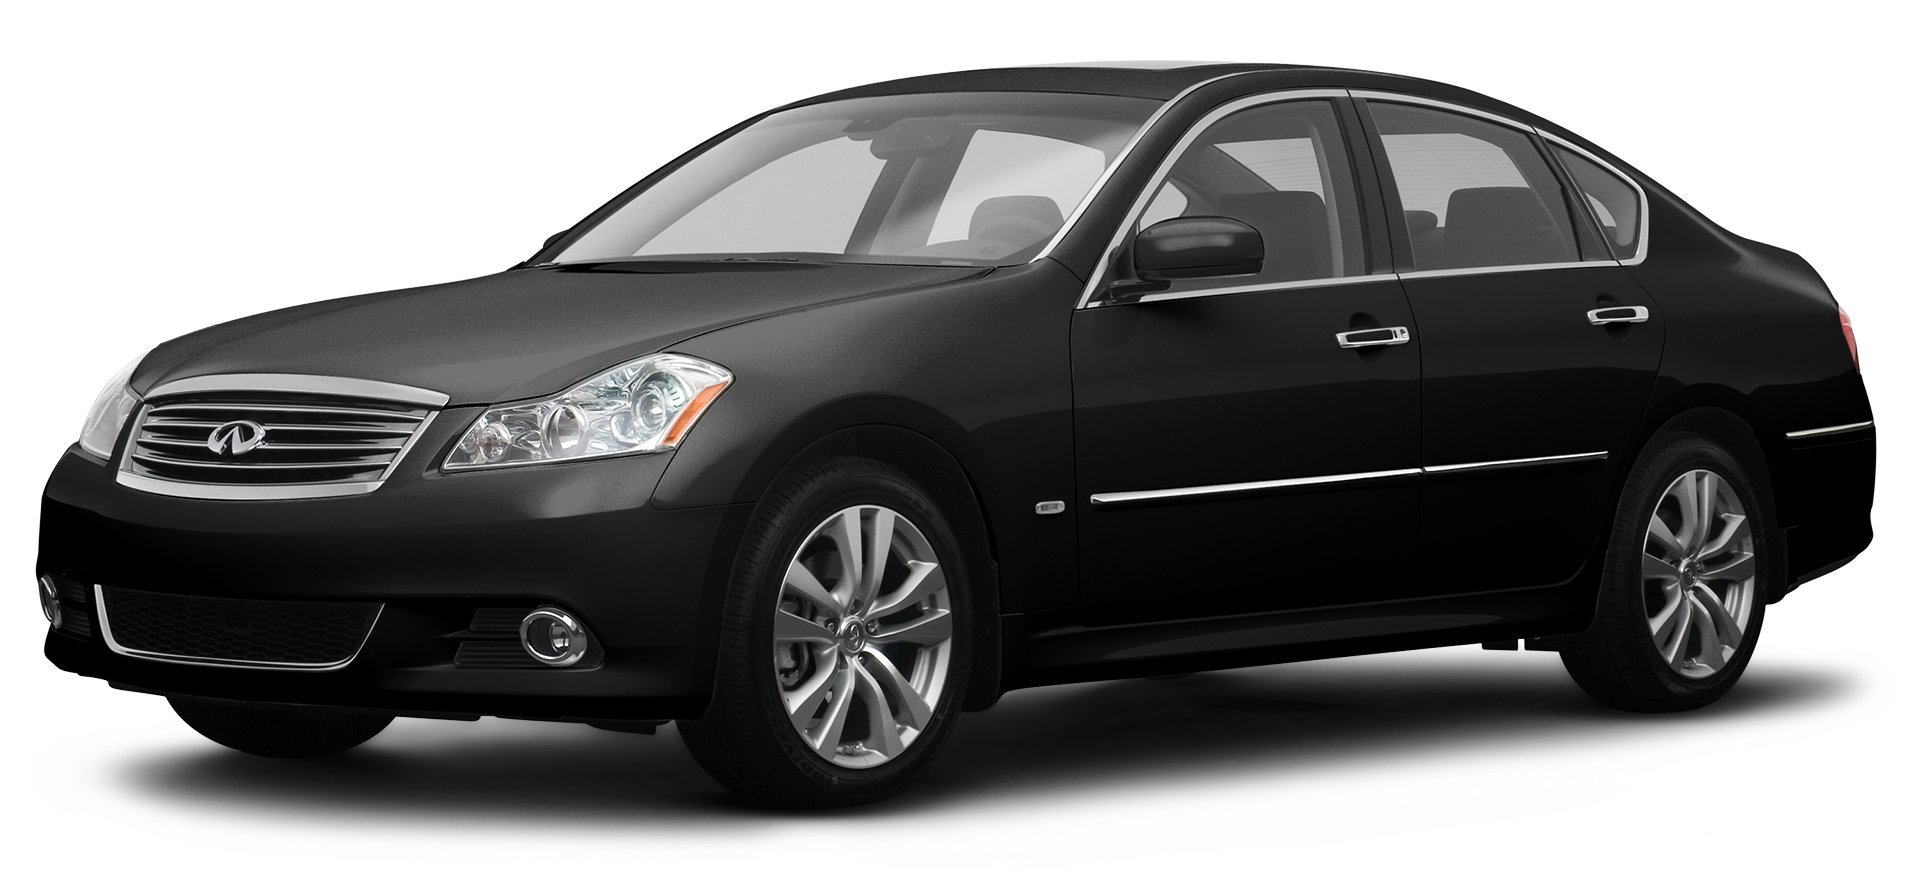 2008 Infiniti M35 Reviews Images And Specs Vehicles Remote Starter For M35x 4 Door Sedan Rear Wheel Drive